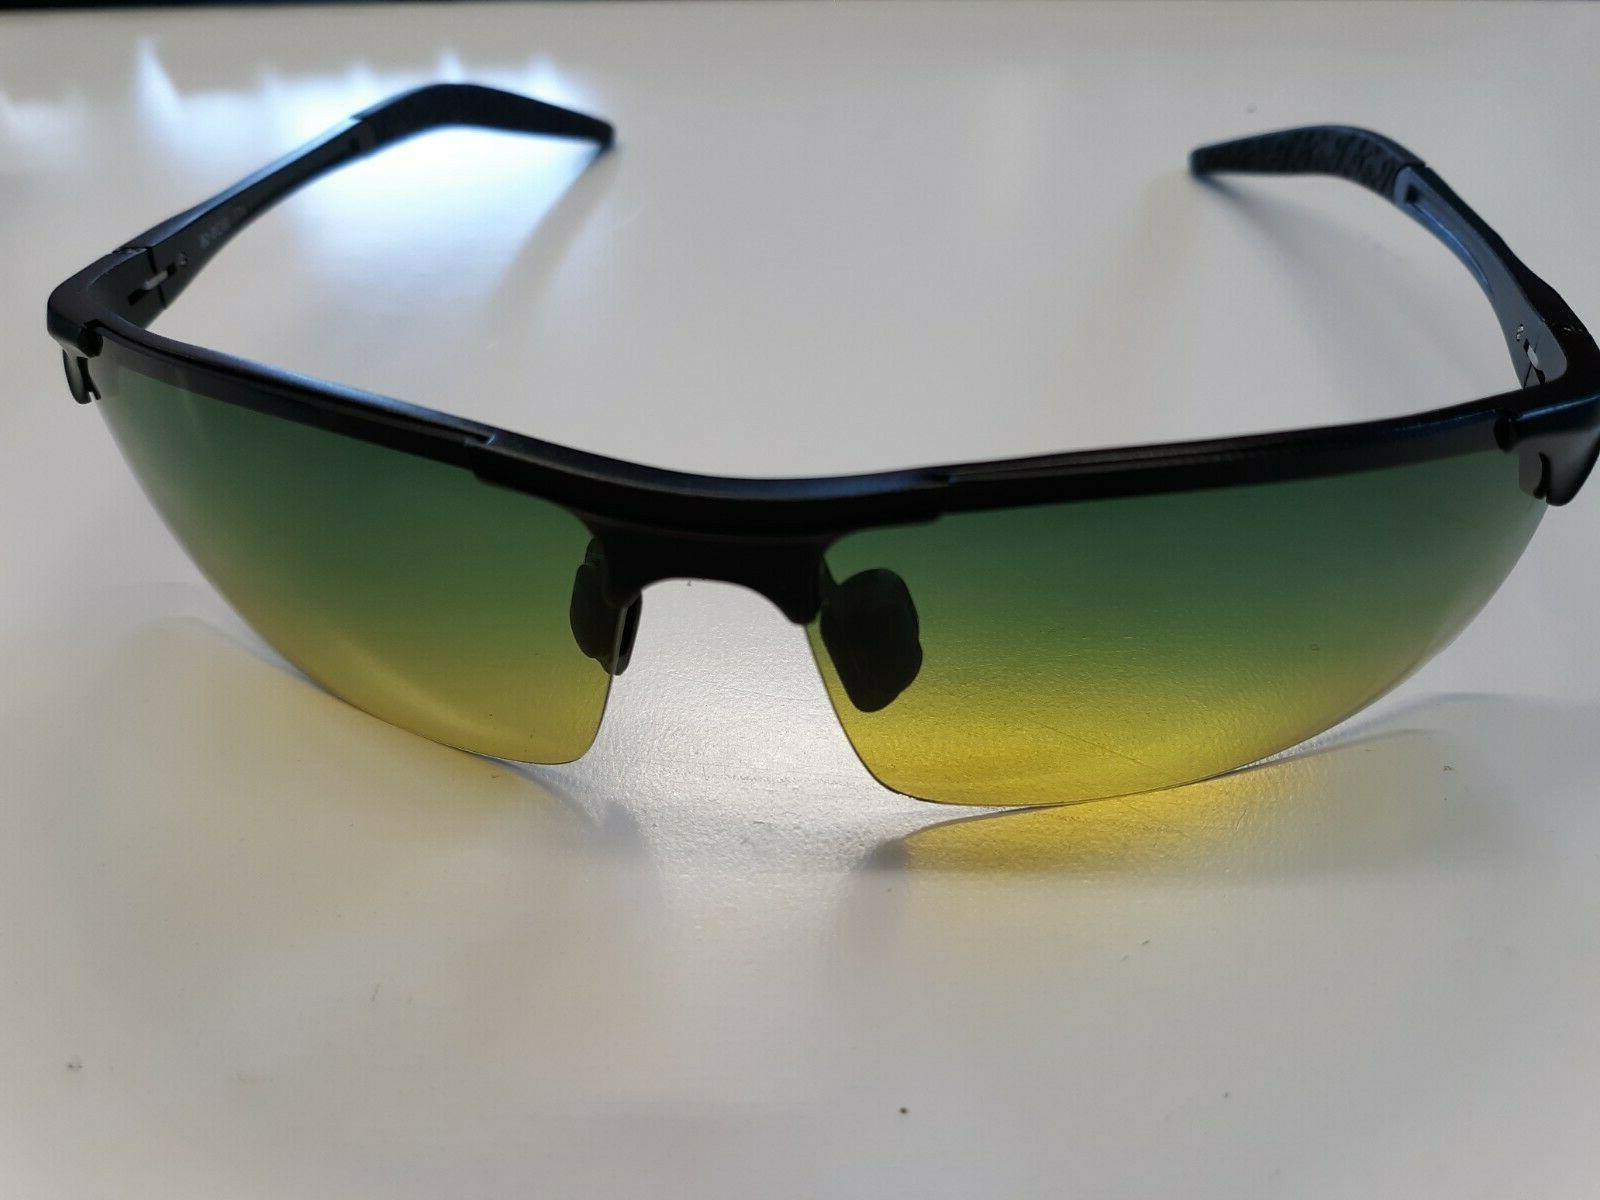 unisex polarized sunglasses stylish sun glasses yellow